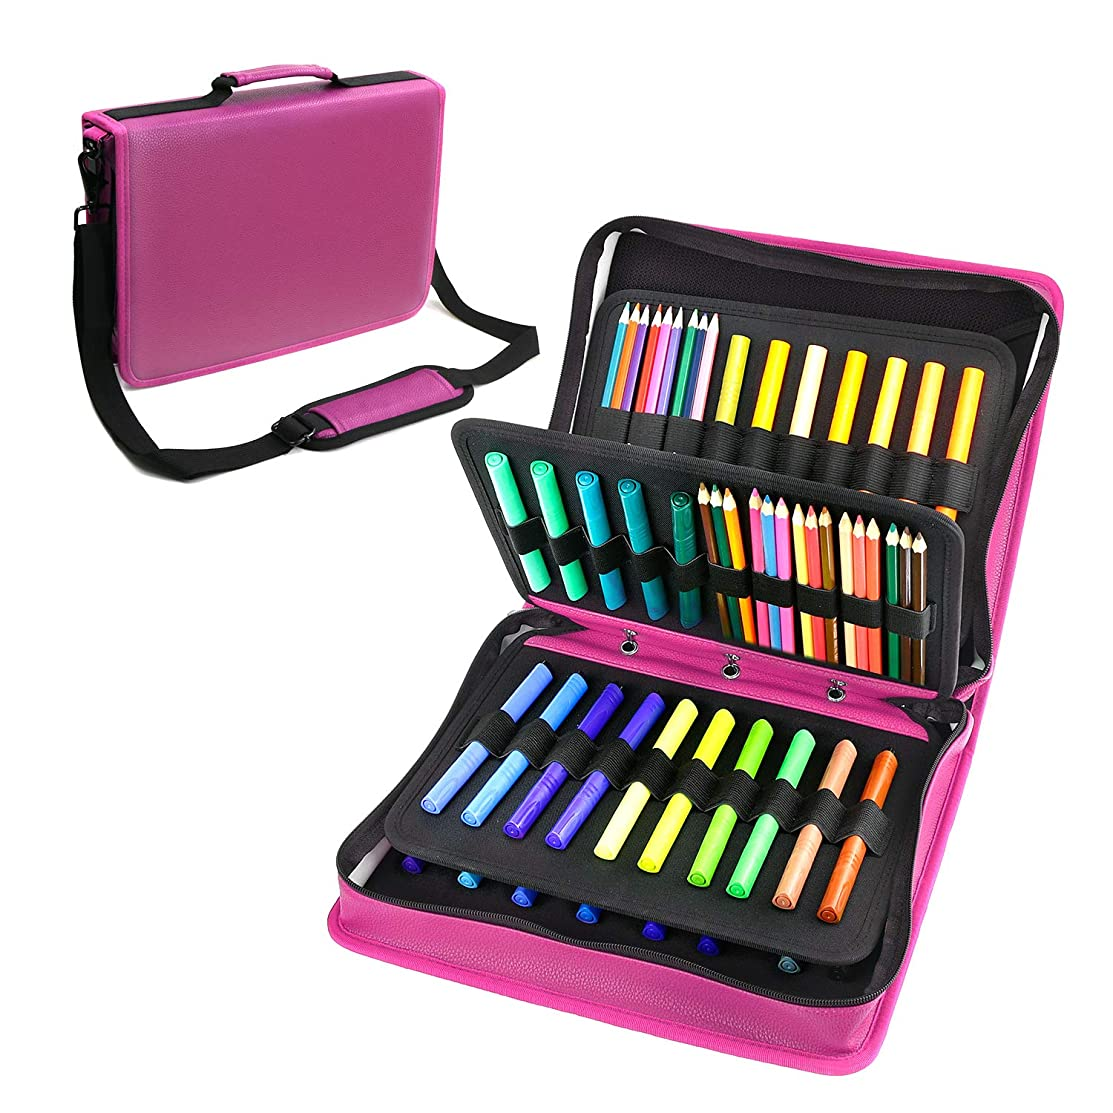 180 Colored Pencils Case / 140 Gel Pens Bag - YOUSHARES PU Leather Colored Pencil & Gel Pen Case with Zipper Holds - Artist use Supply School Large Capacity Professional Storage(Red)